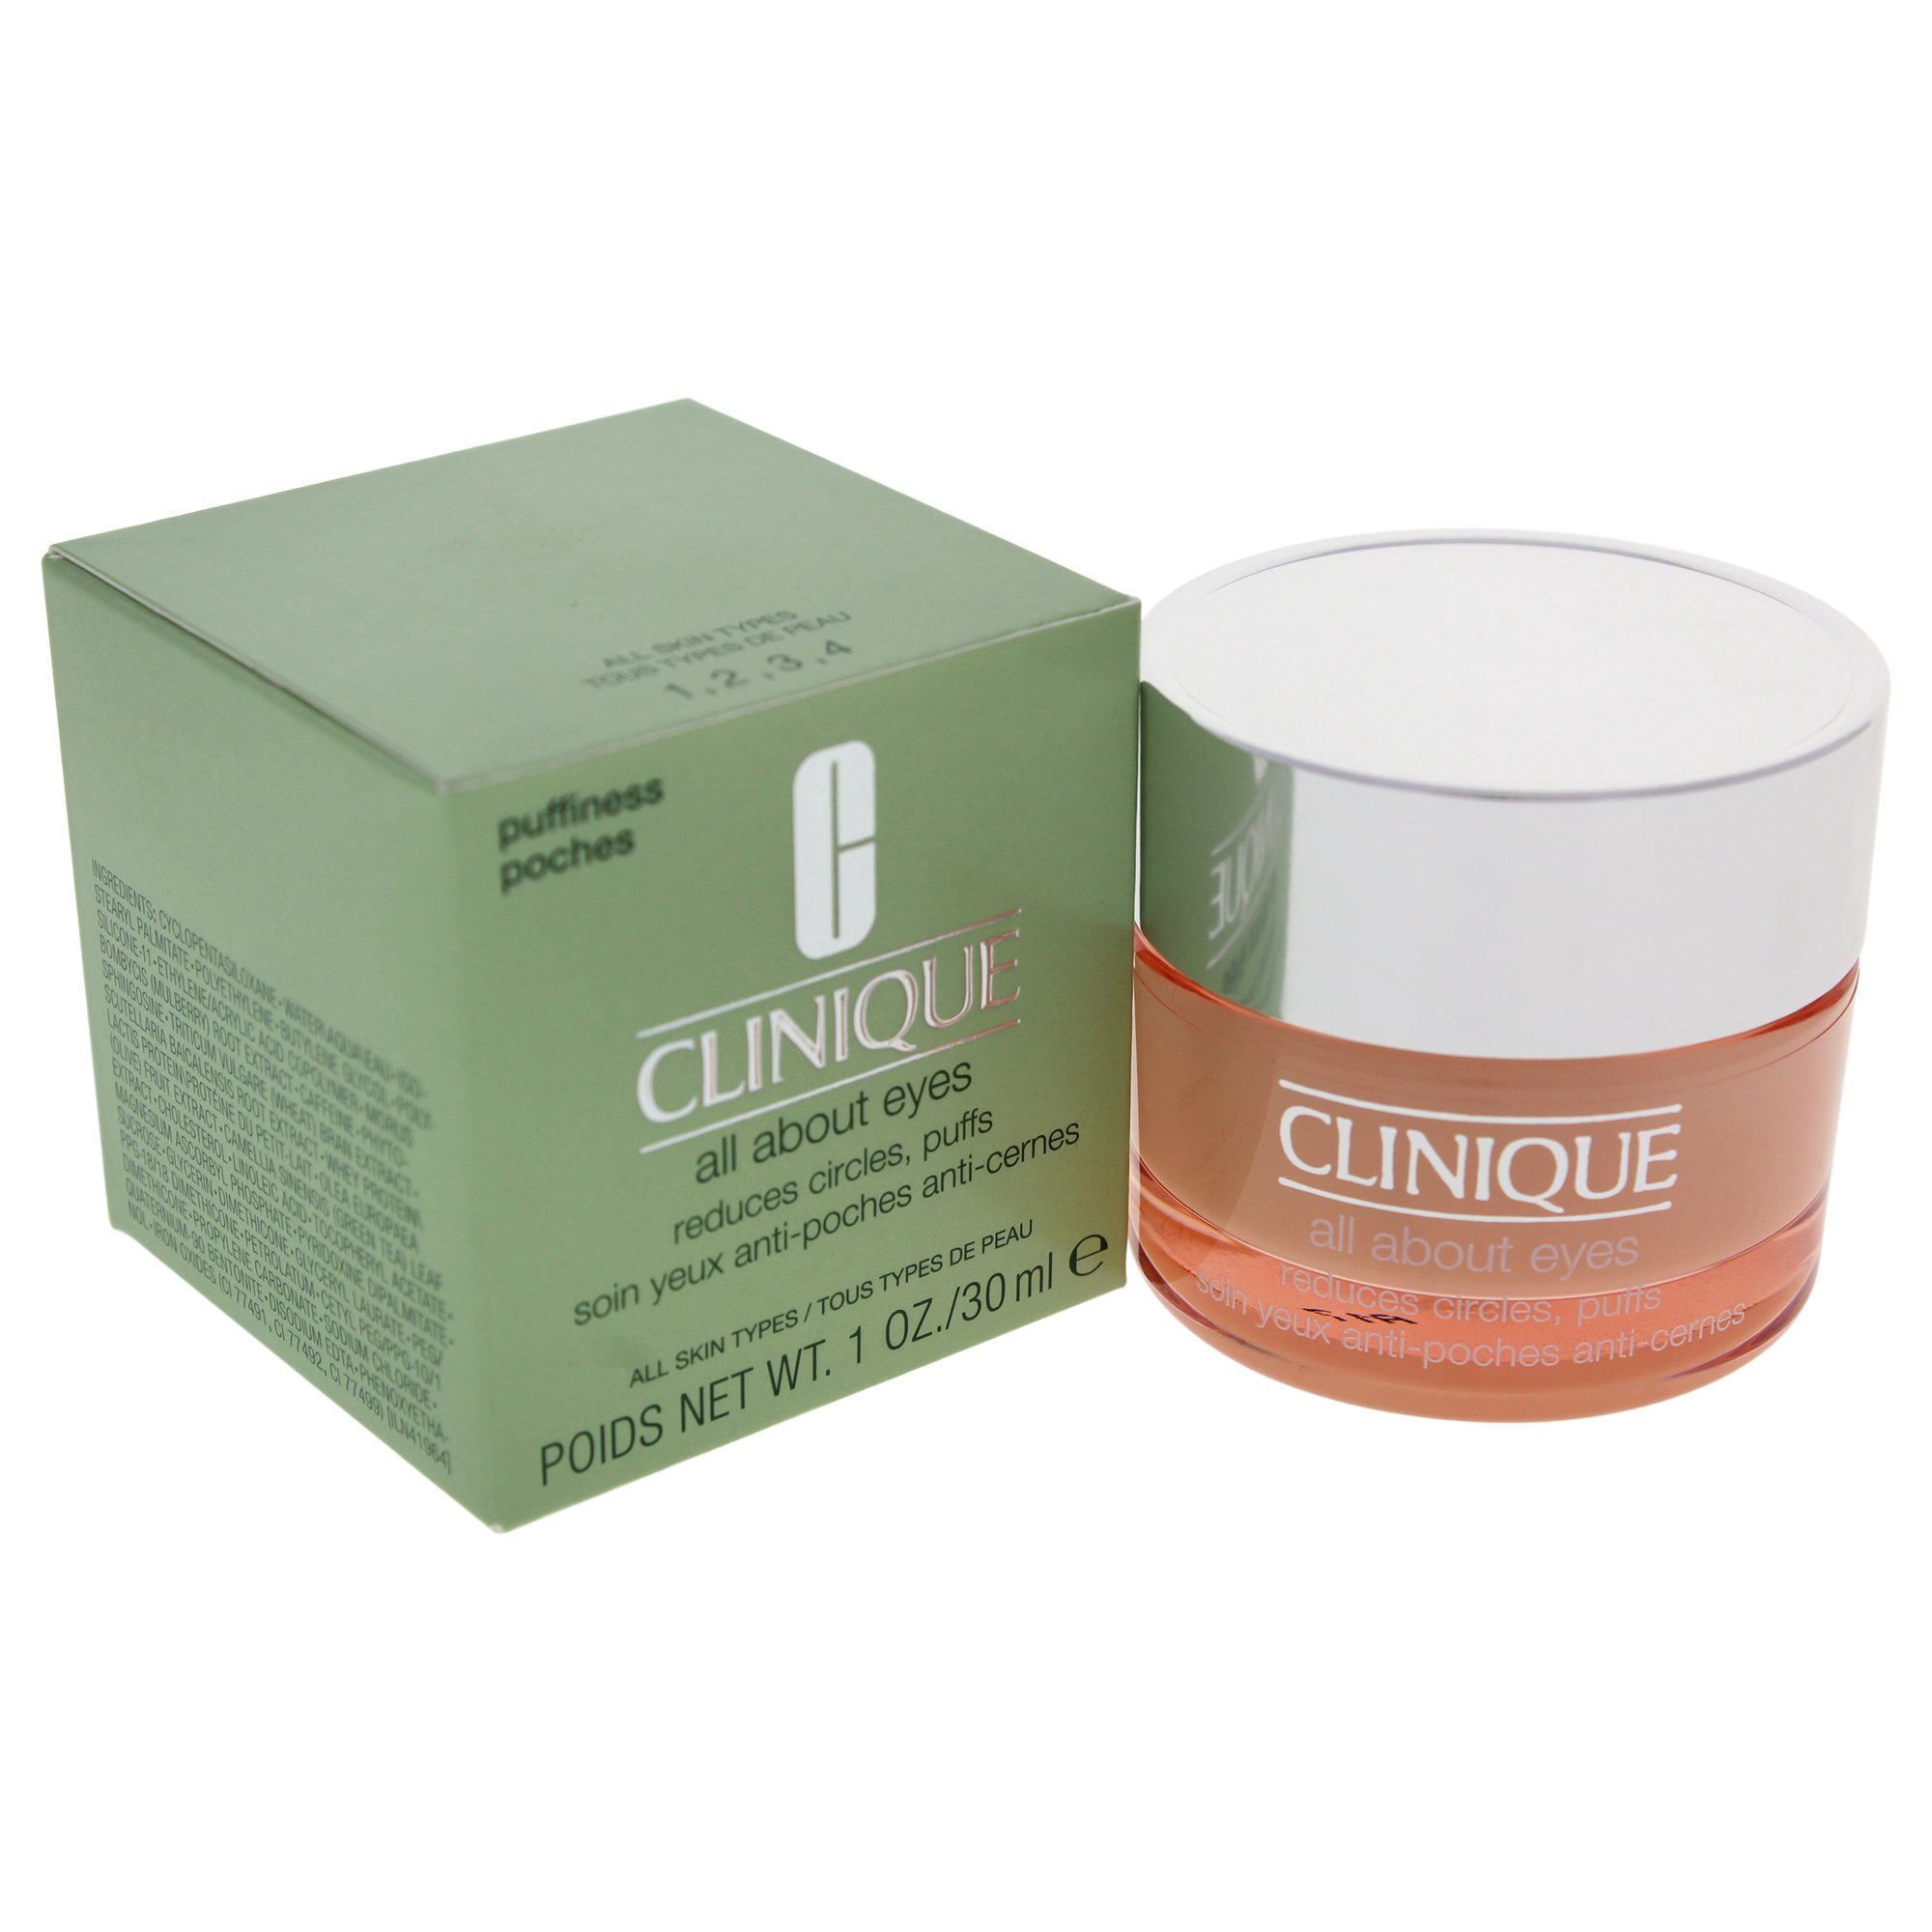 Clinique All About Eyes by Clinique for Women - 1 oz Eye Cream. by Clinique